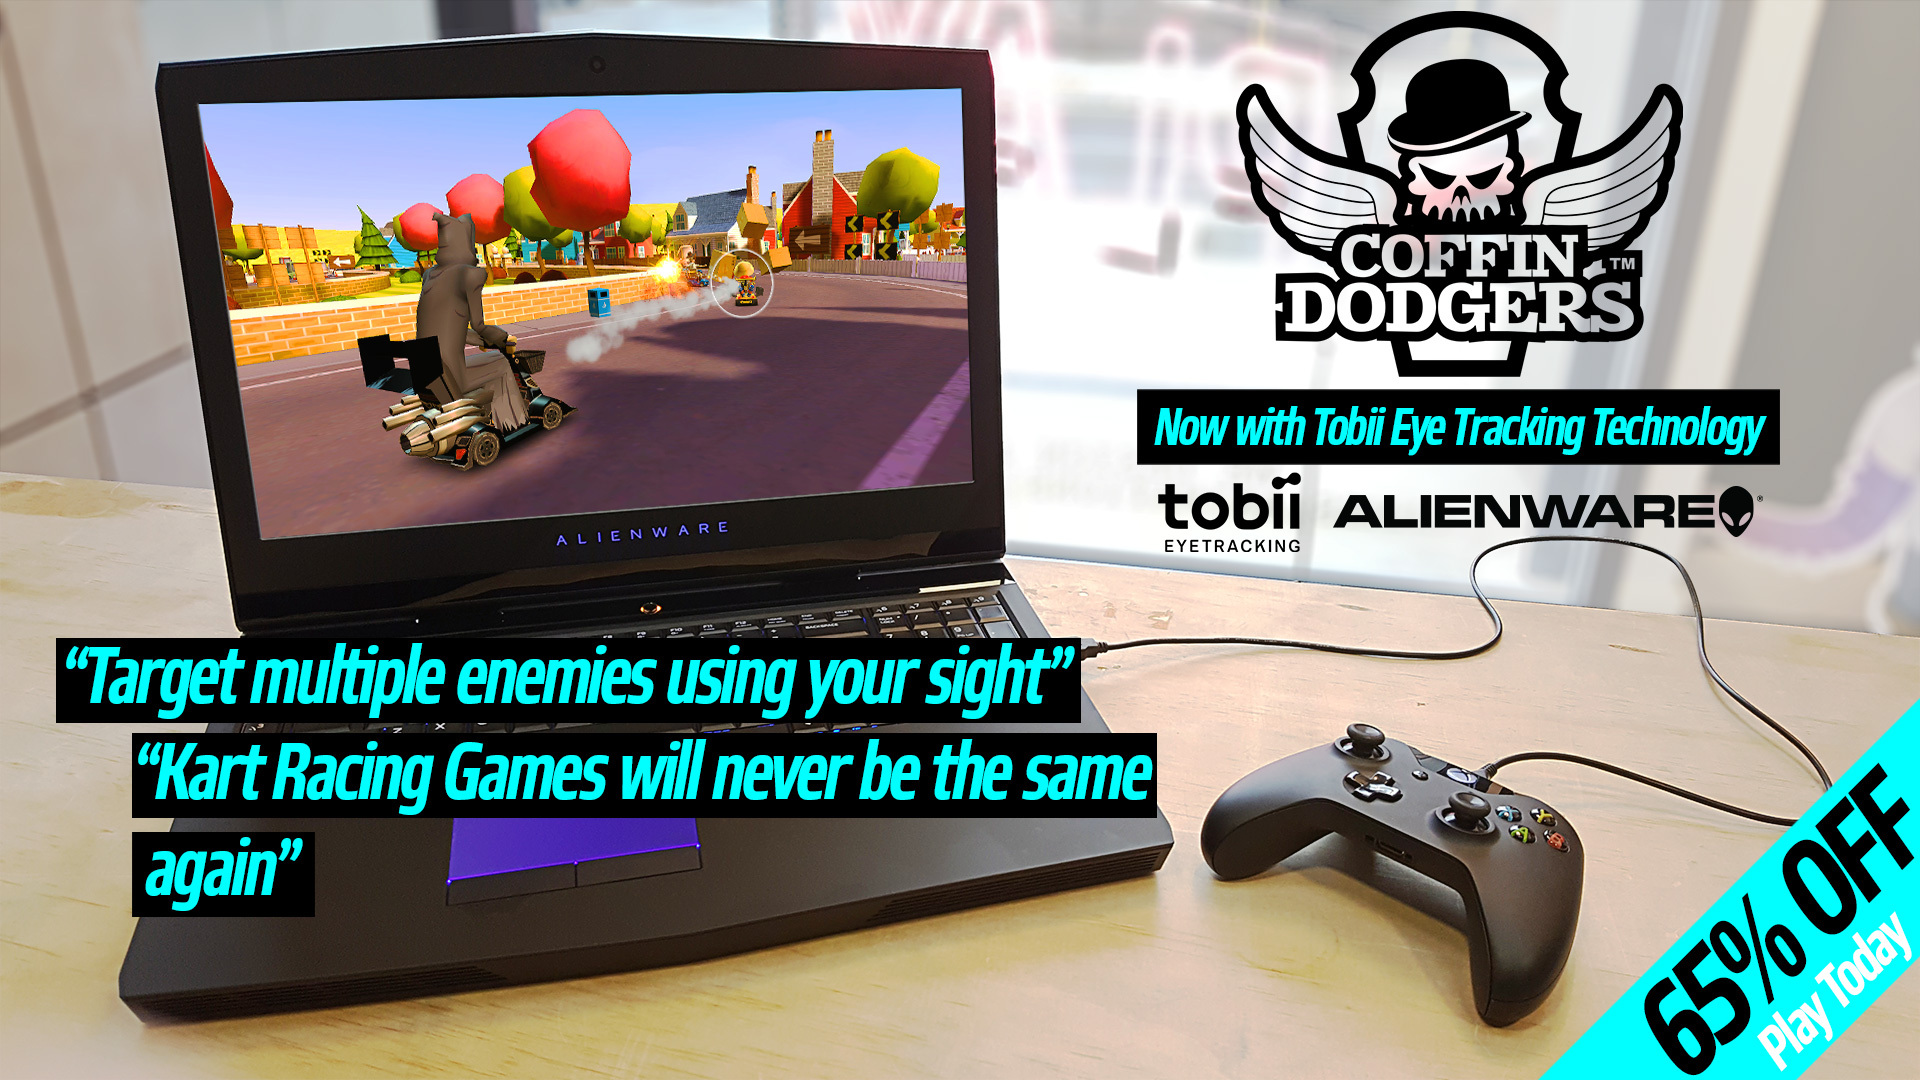 Coffin Dodgers :: We've integrated Tobii Eye tracking